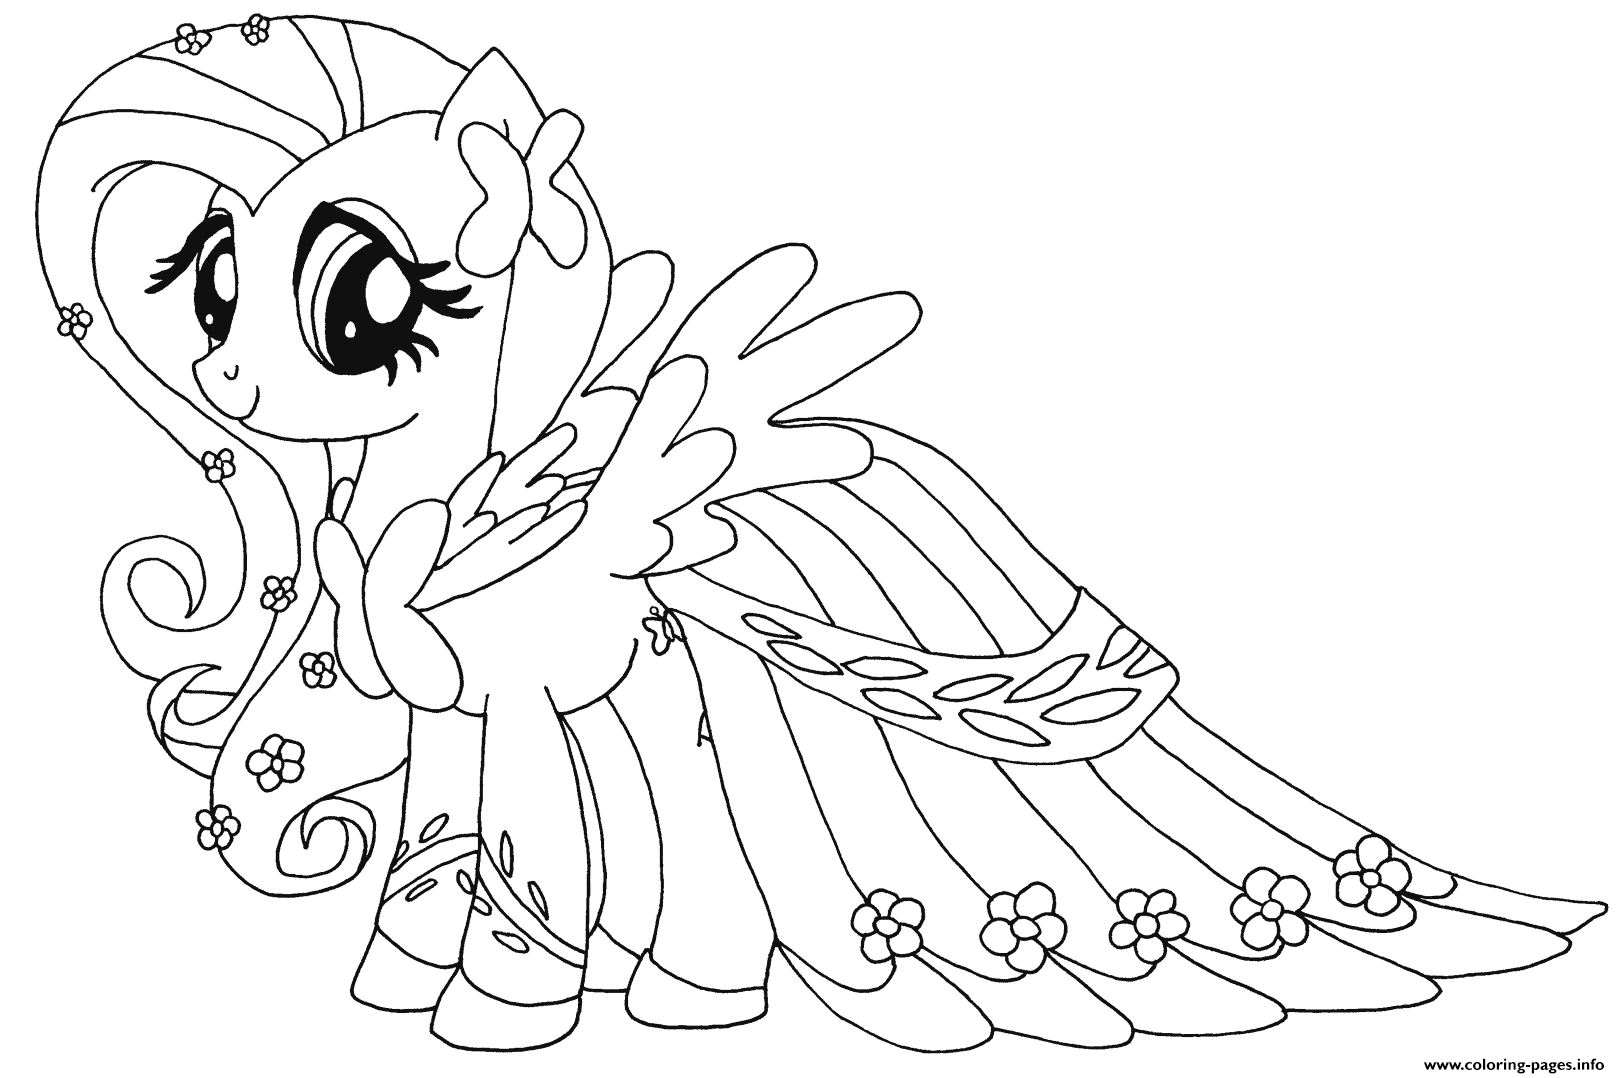 Print Fluttershy My Little Pony Coloring Pages My Little Pony Coloring My Little Pony Drawing Pony Drawing